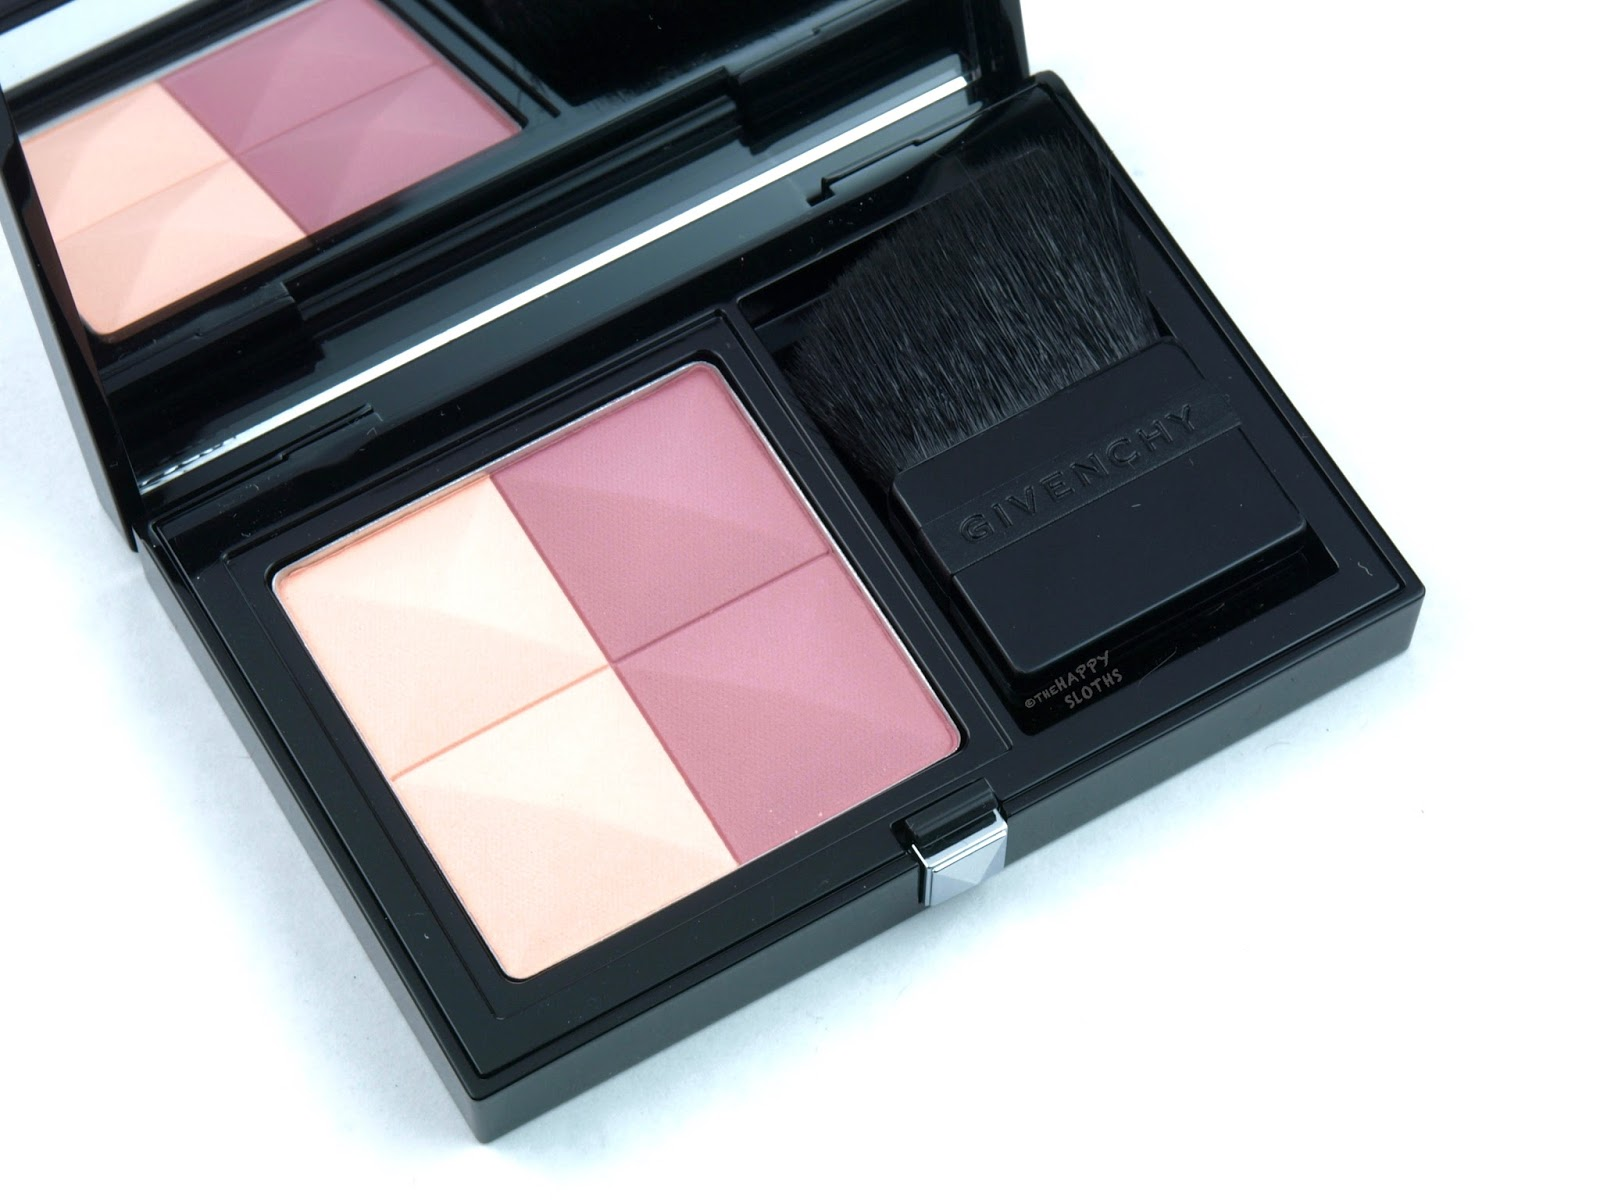 "Givenchy Prisme Blush Highlight & Structure Powder Blush Duo ""06 Romantica"": Review and Swatches"